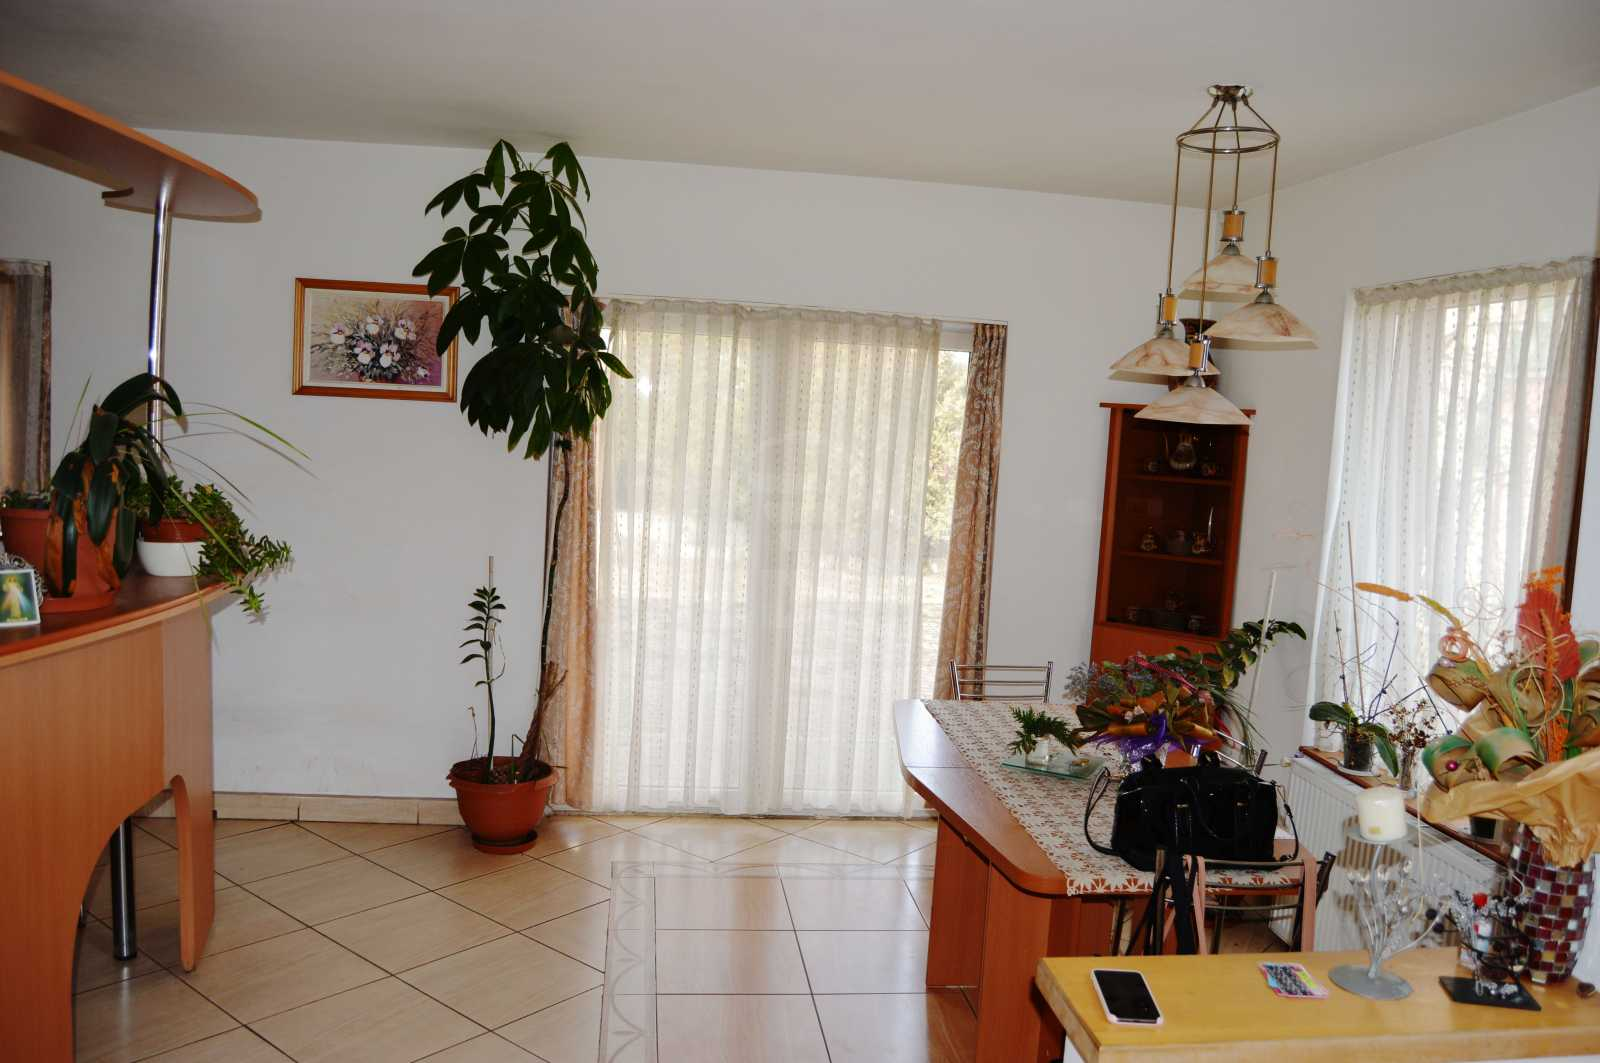 House for sale 5 rooms, CACJ285647-6